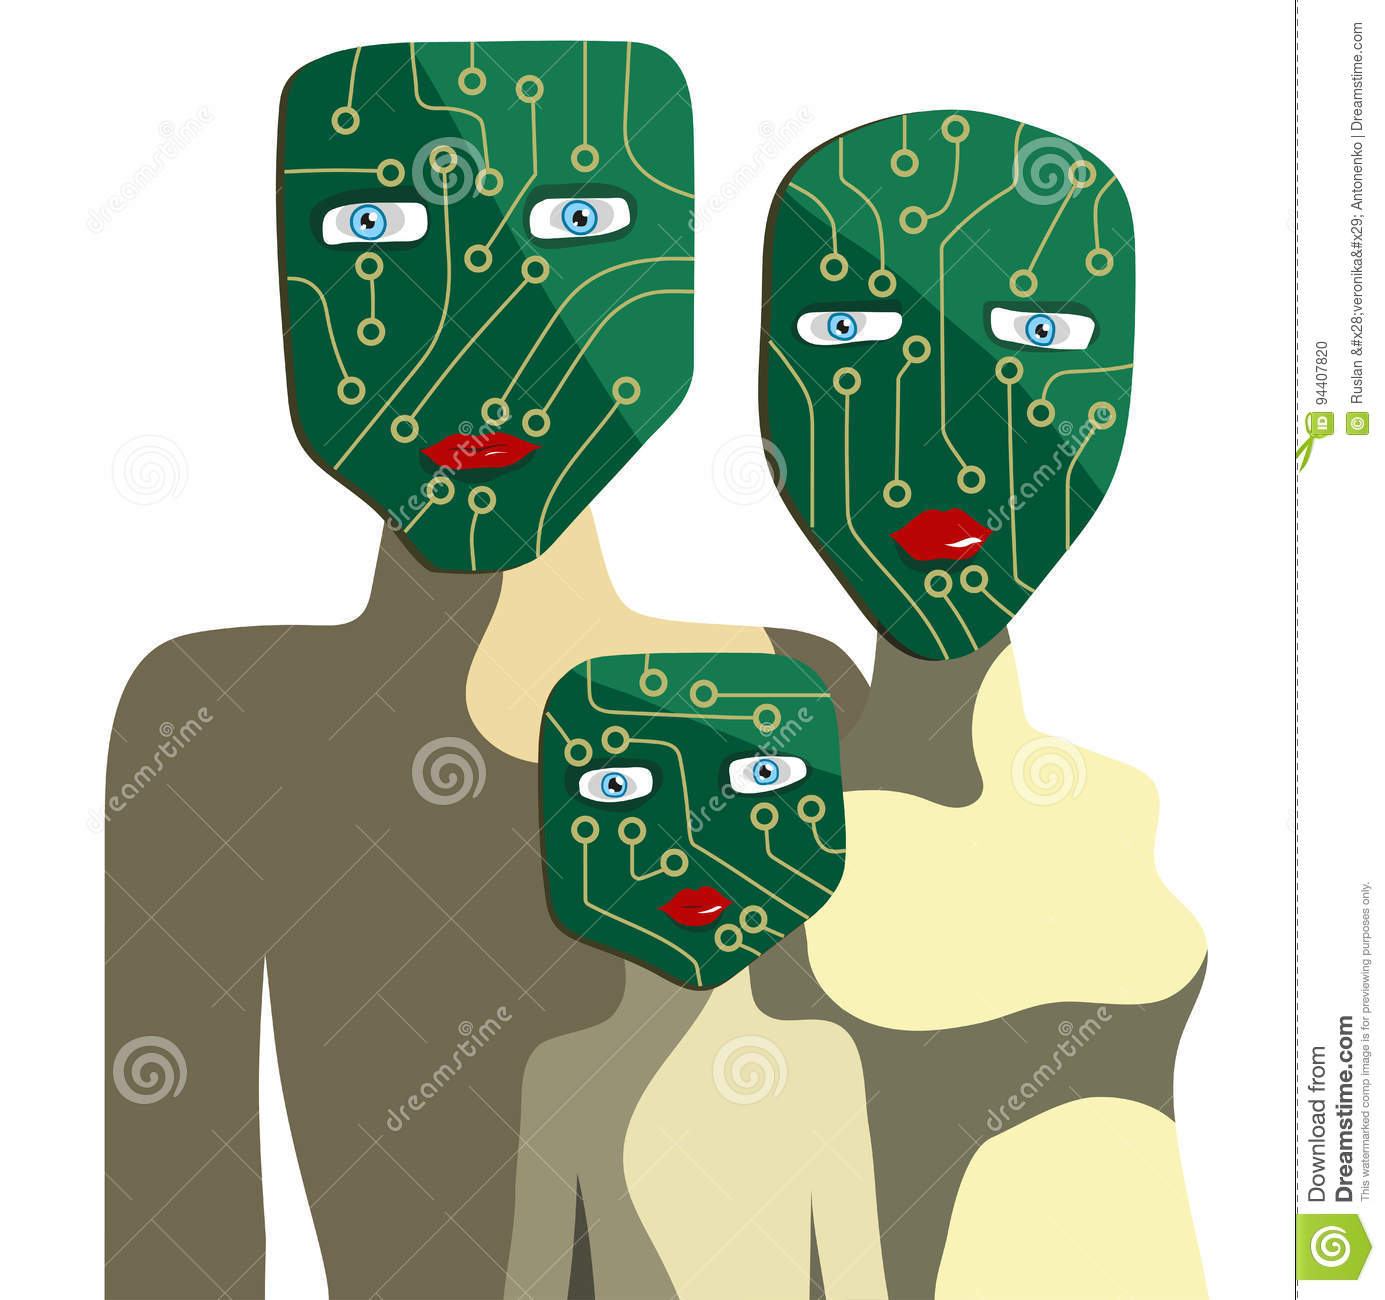 chipsetfamily people faces form chipset vector illustration 94407820